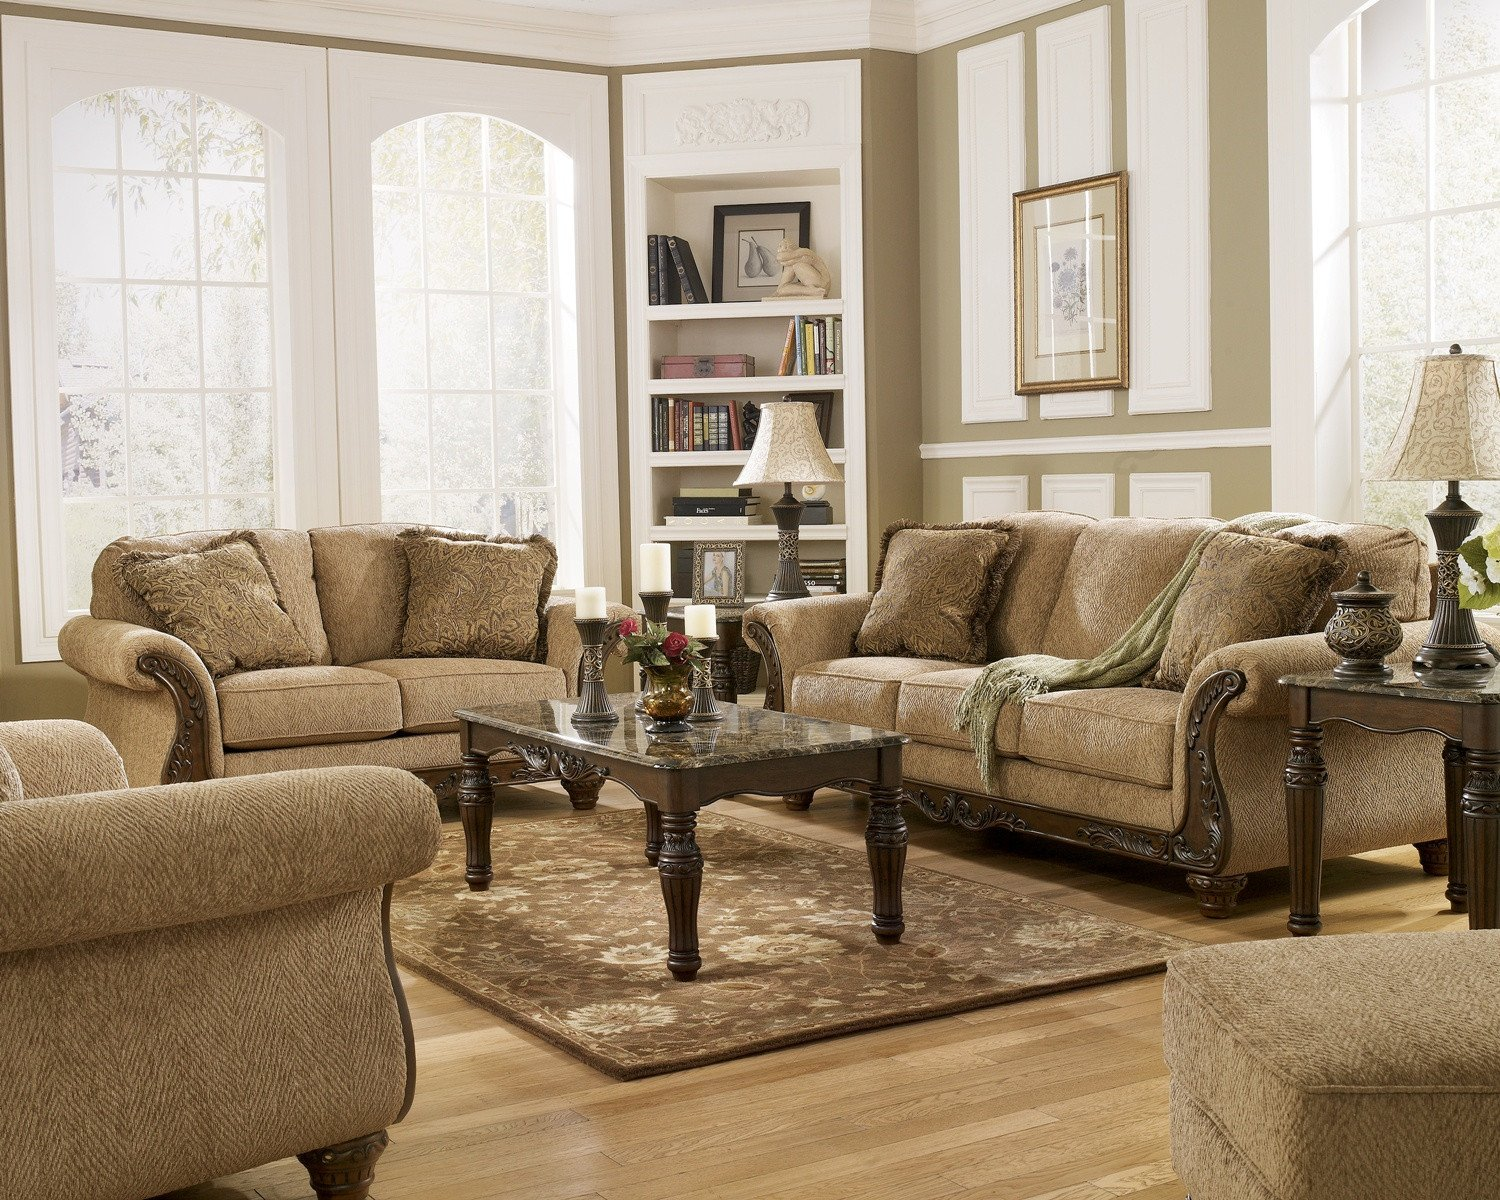 Traditional Living Room Furniture Fresh Cambridge Amber Traditional Living Room Furniture Set Wood Accent